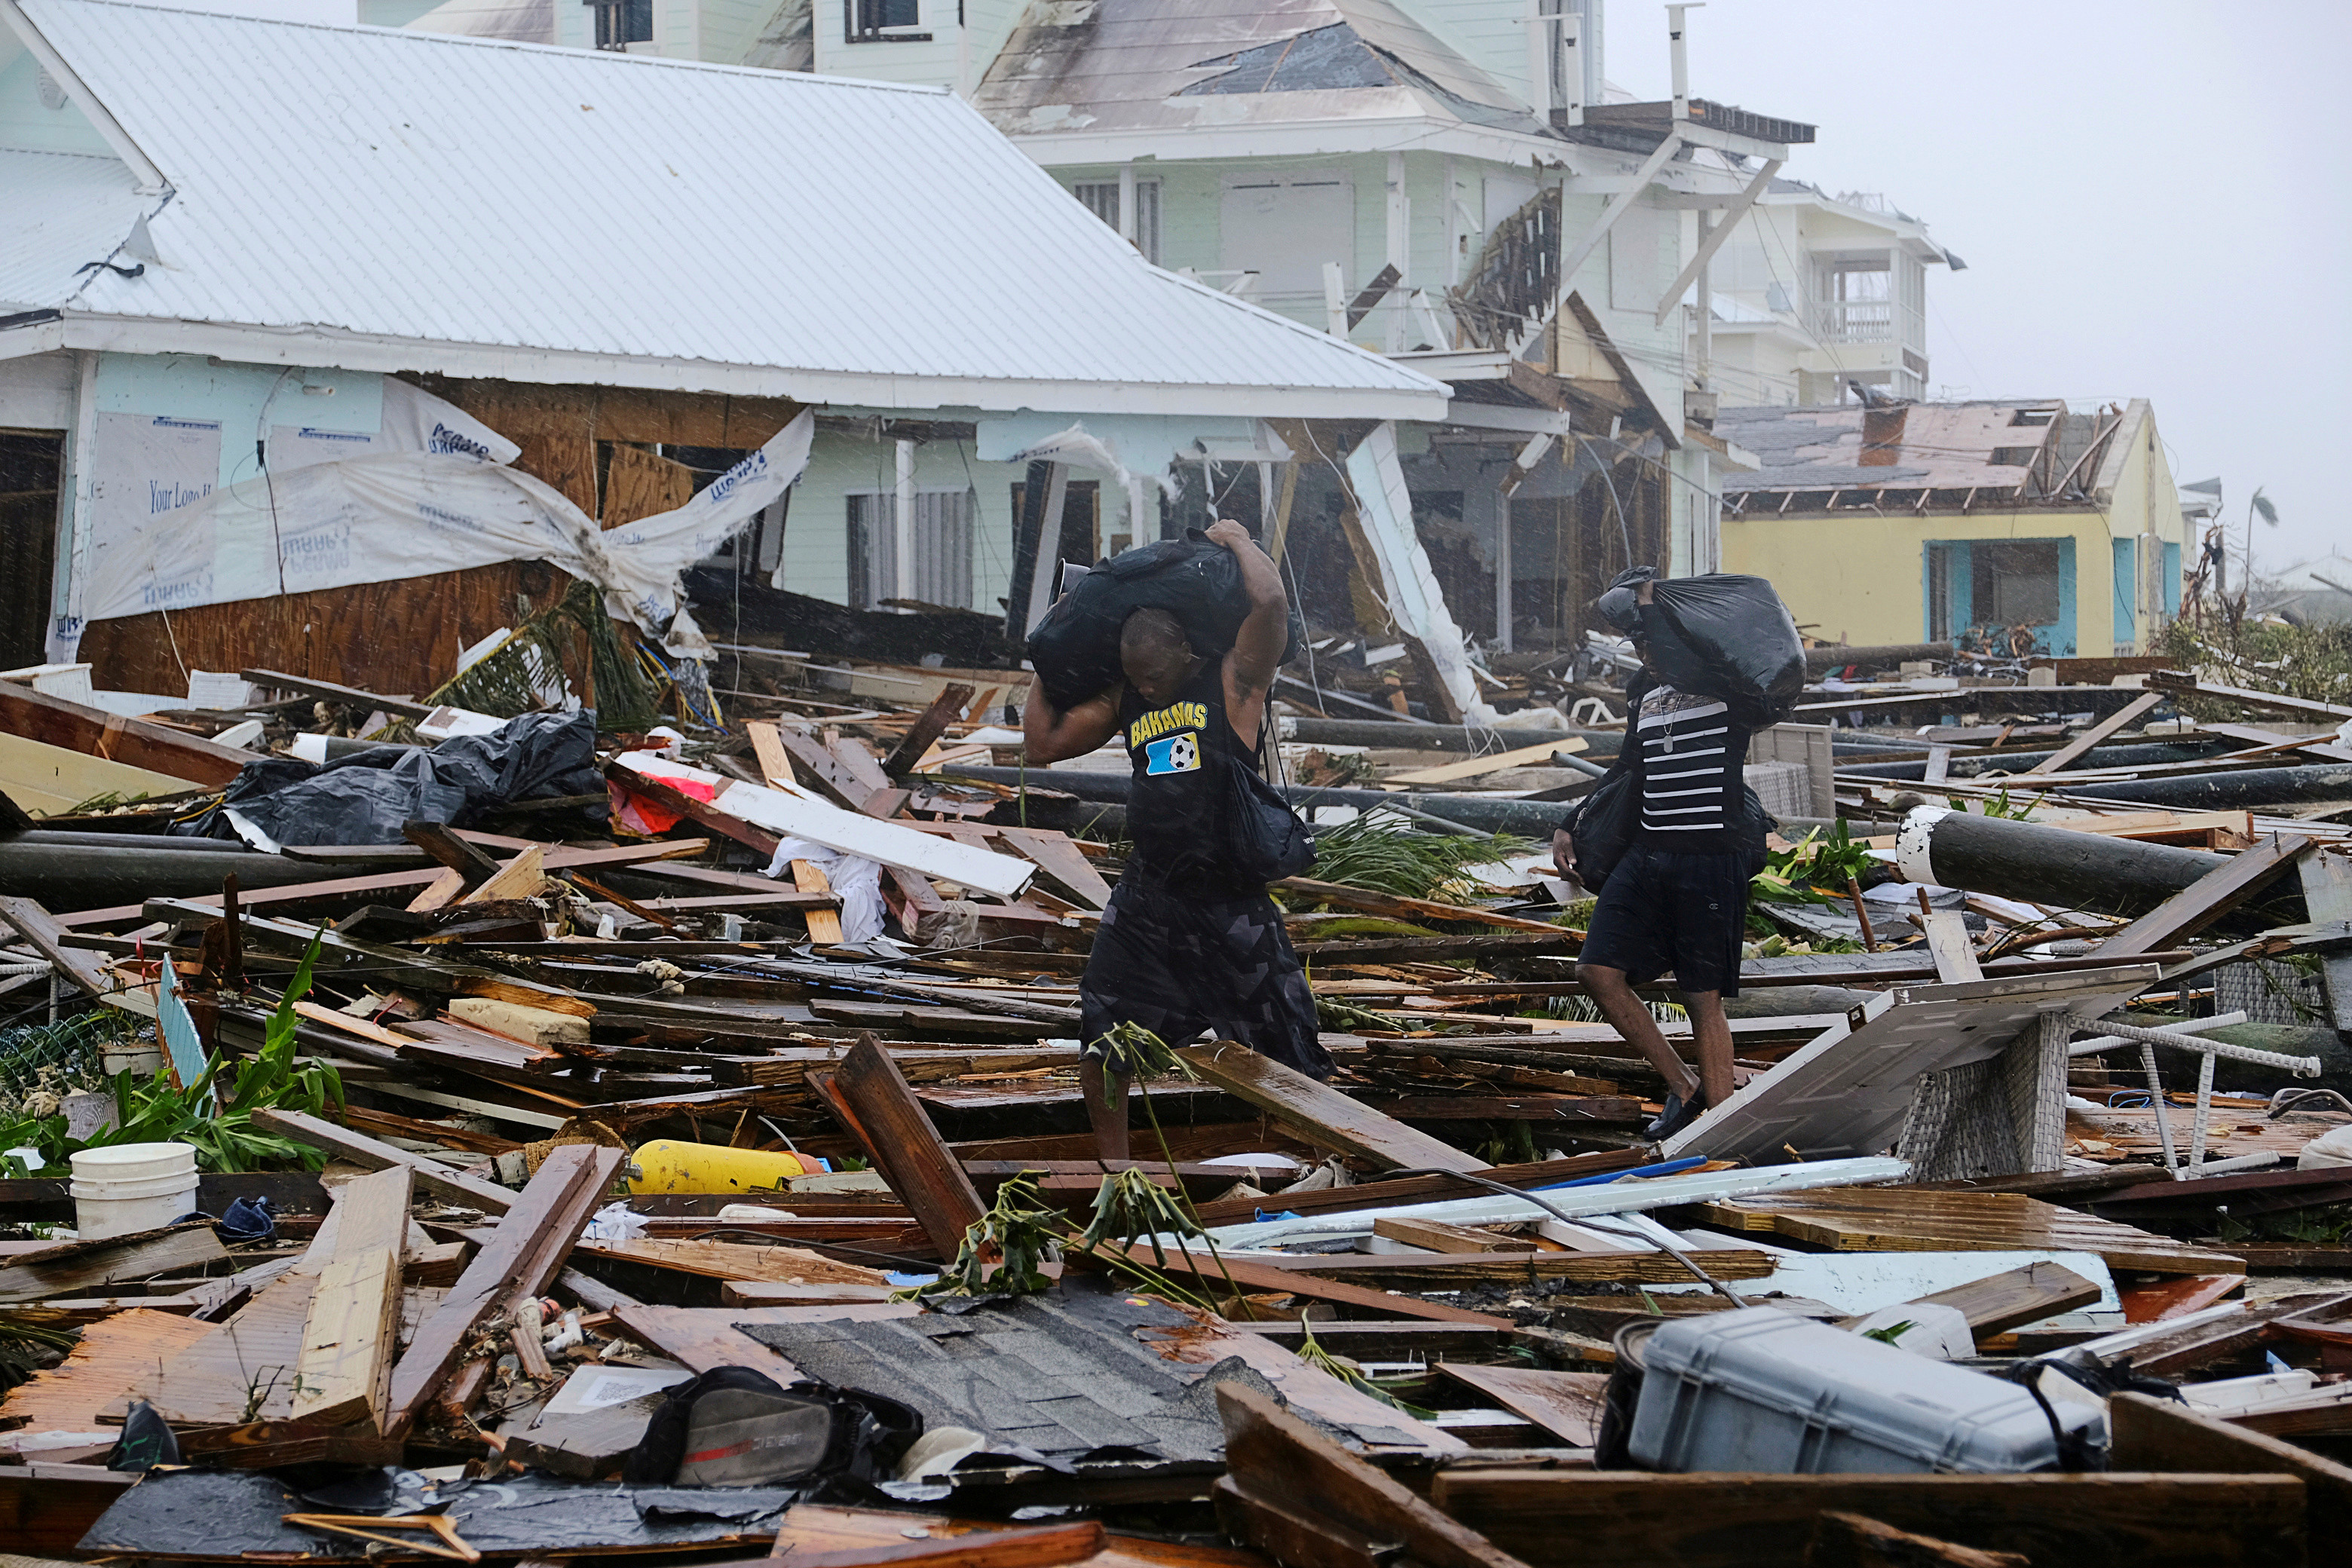 The death toll officially sits at 30 but officials expected that to rise dramatically over the coming days.